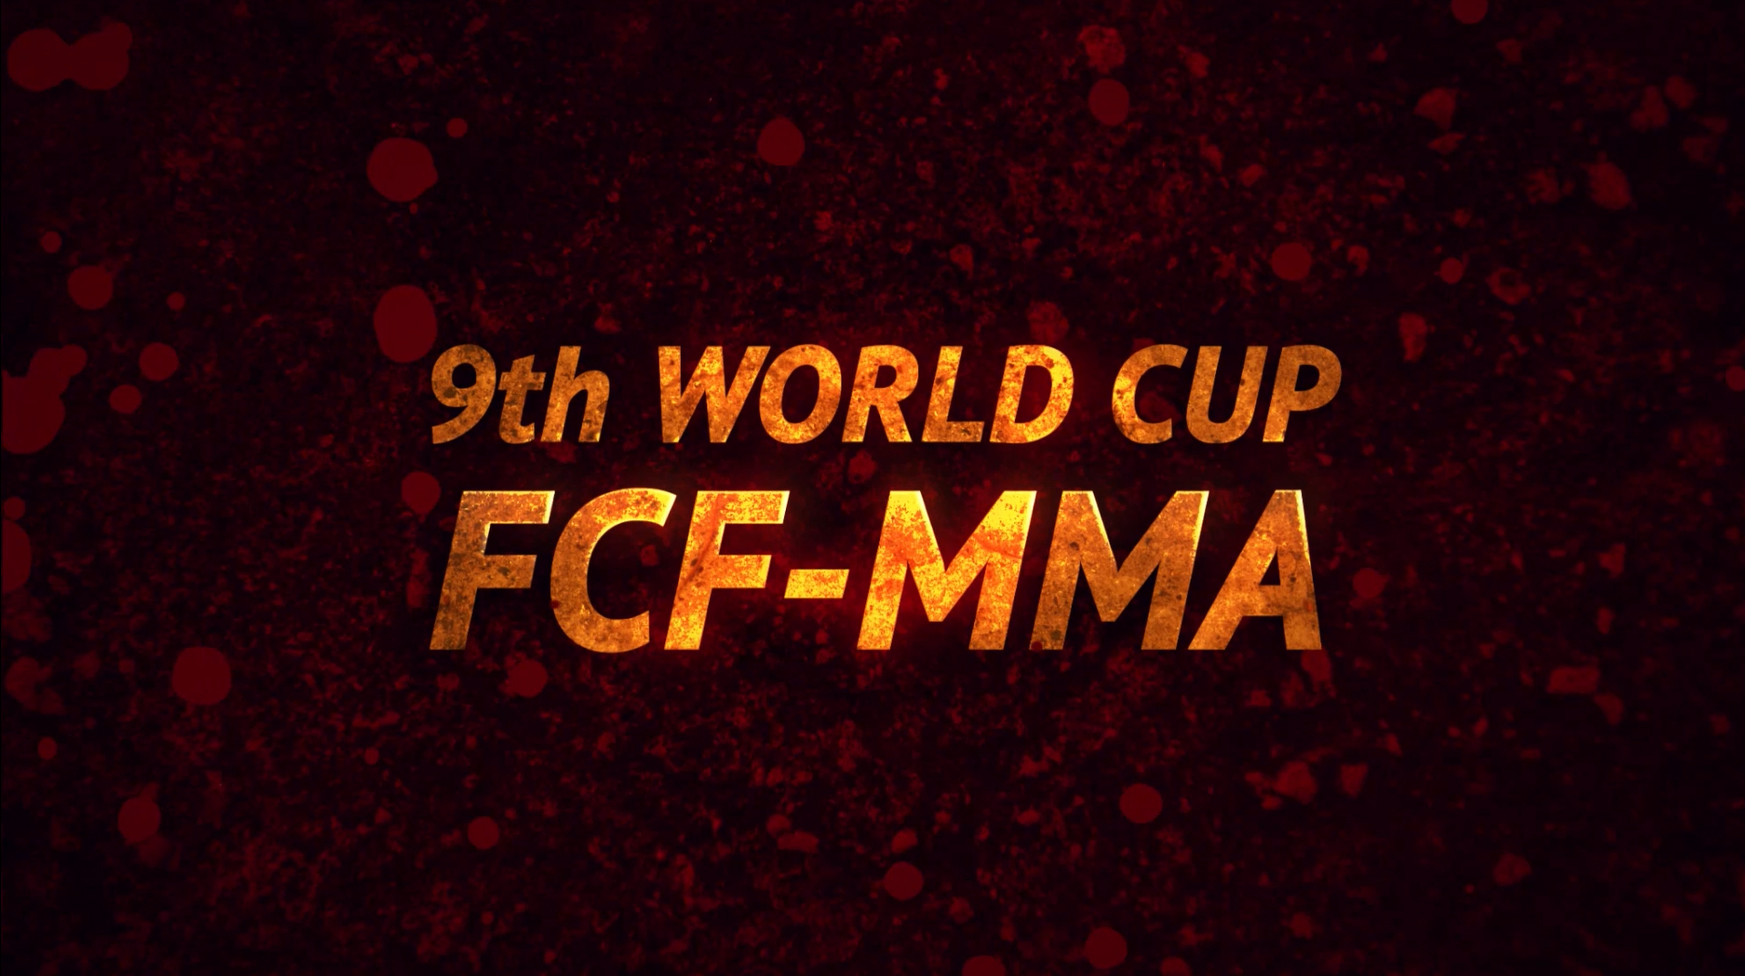 Promo clip 9th World Cup FCF-MMA november 10-11, 2018